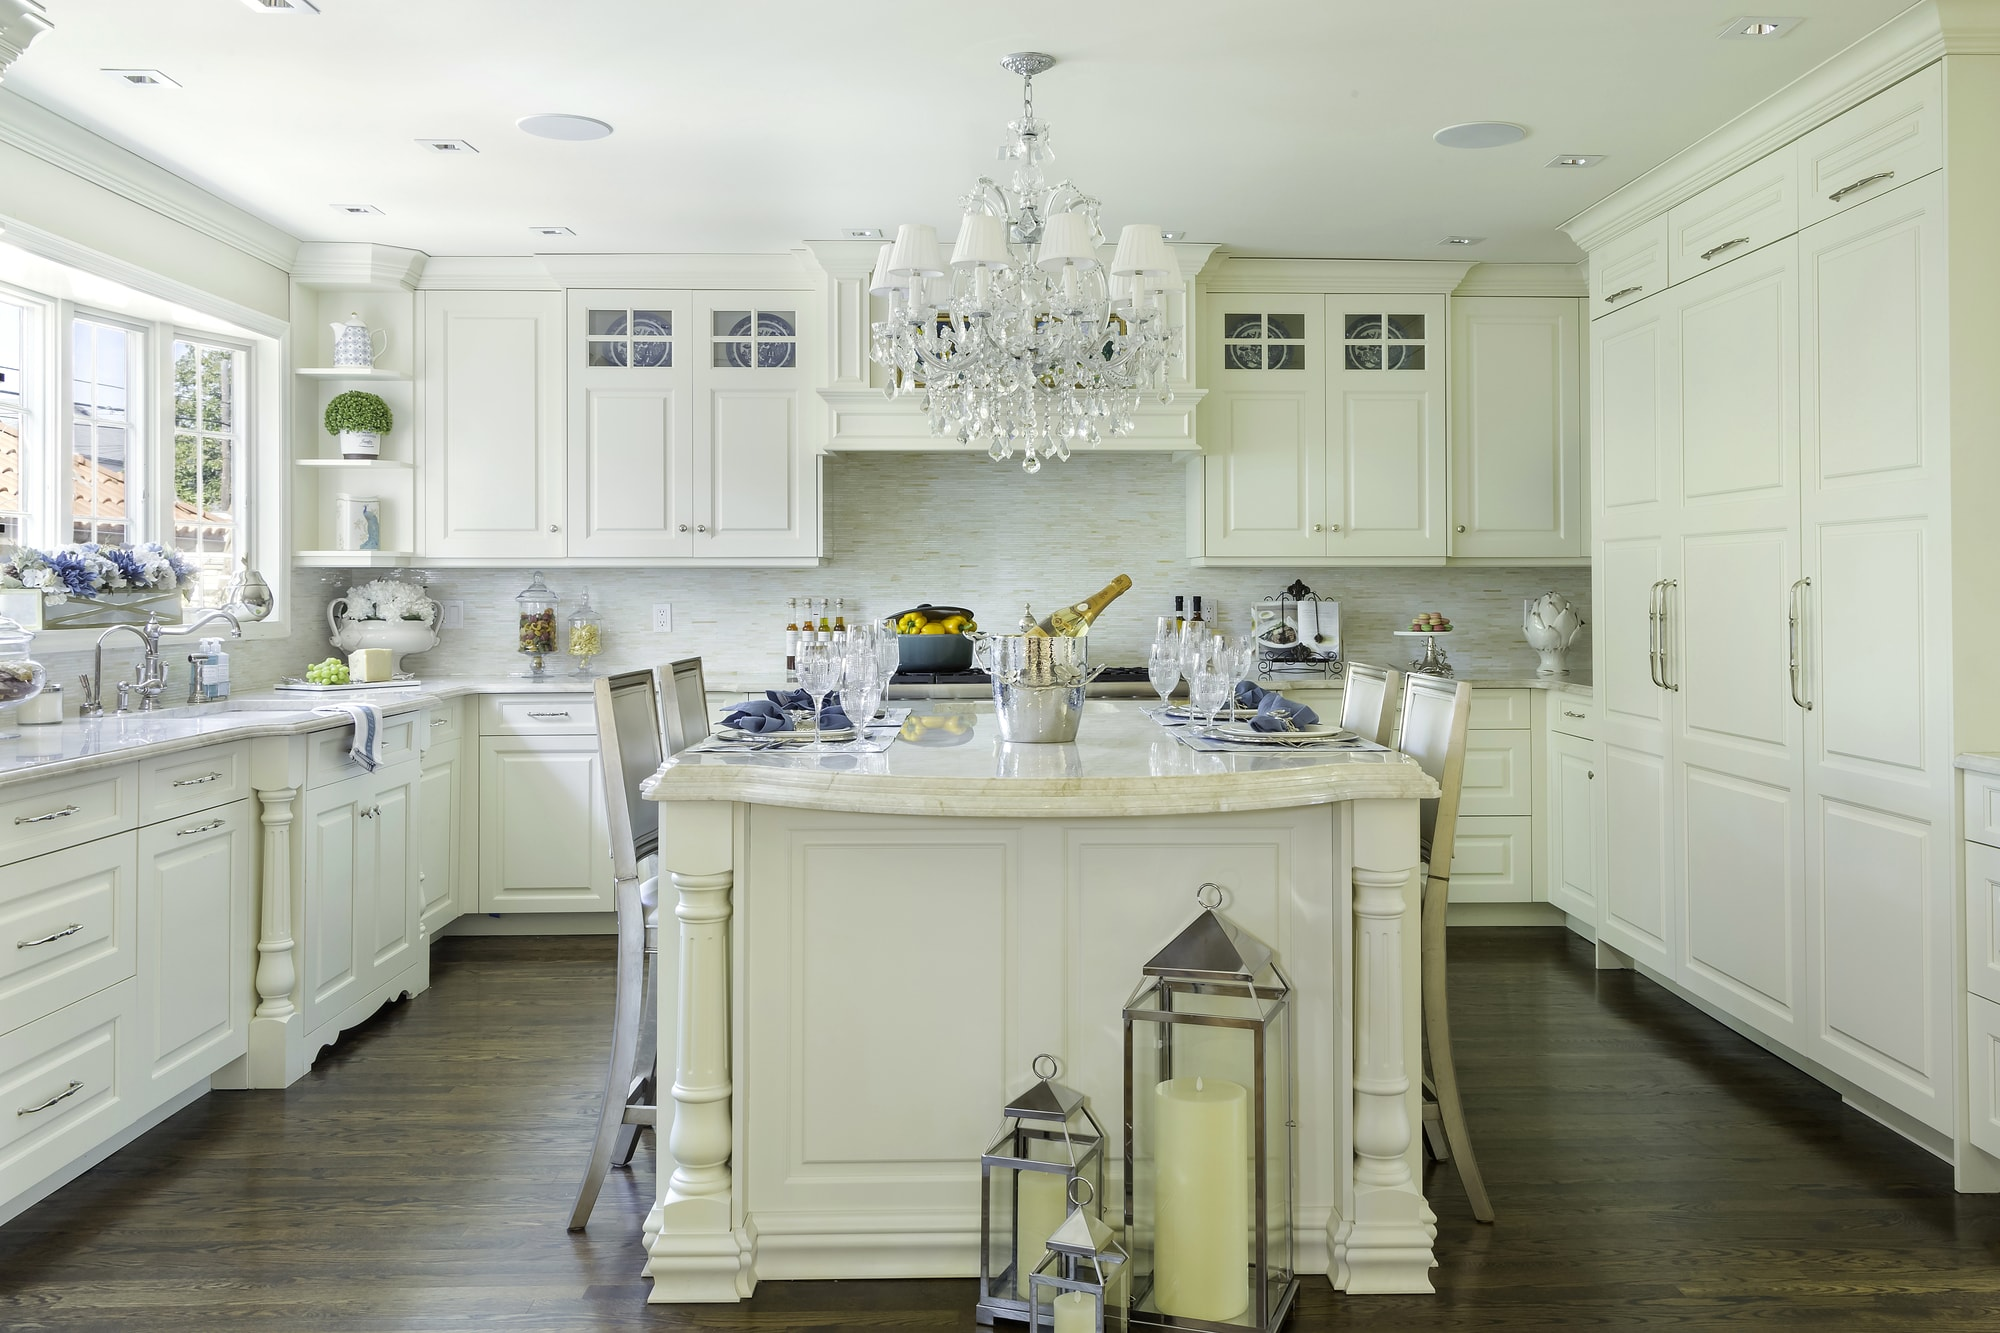 Traditional style kitchen with spicy white design and island in the center